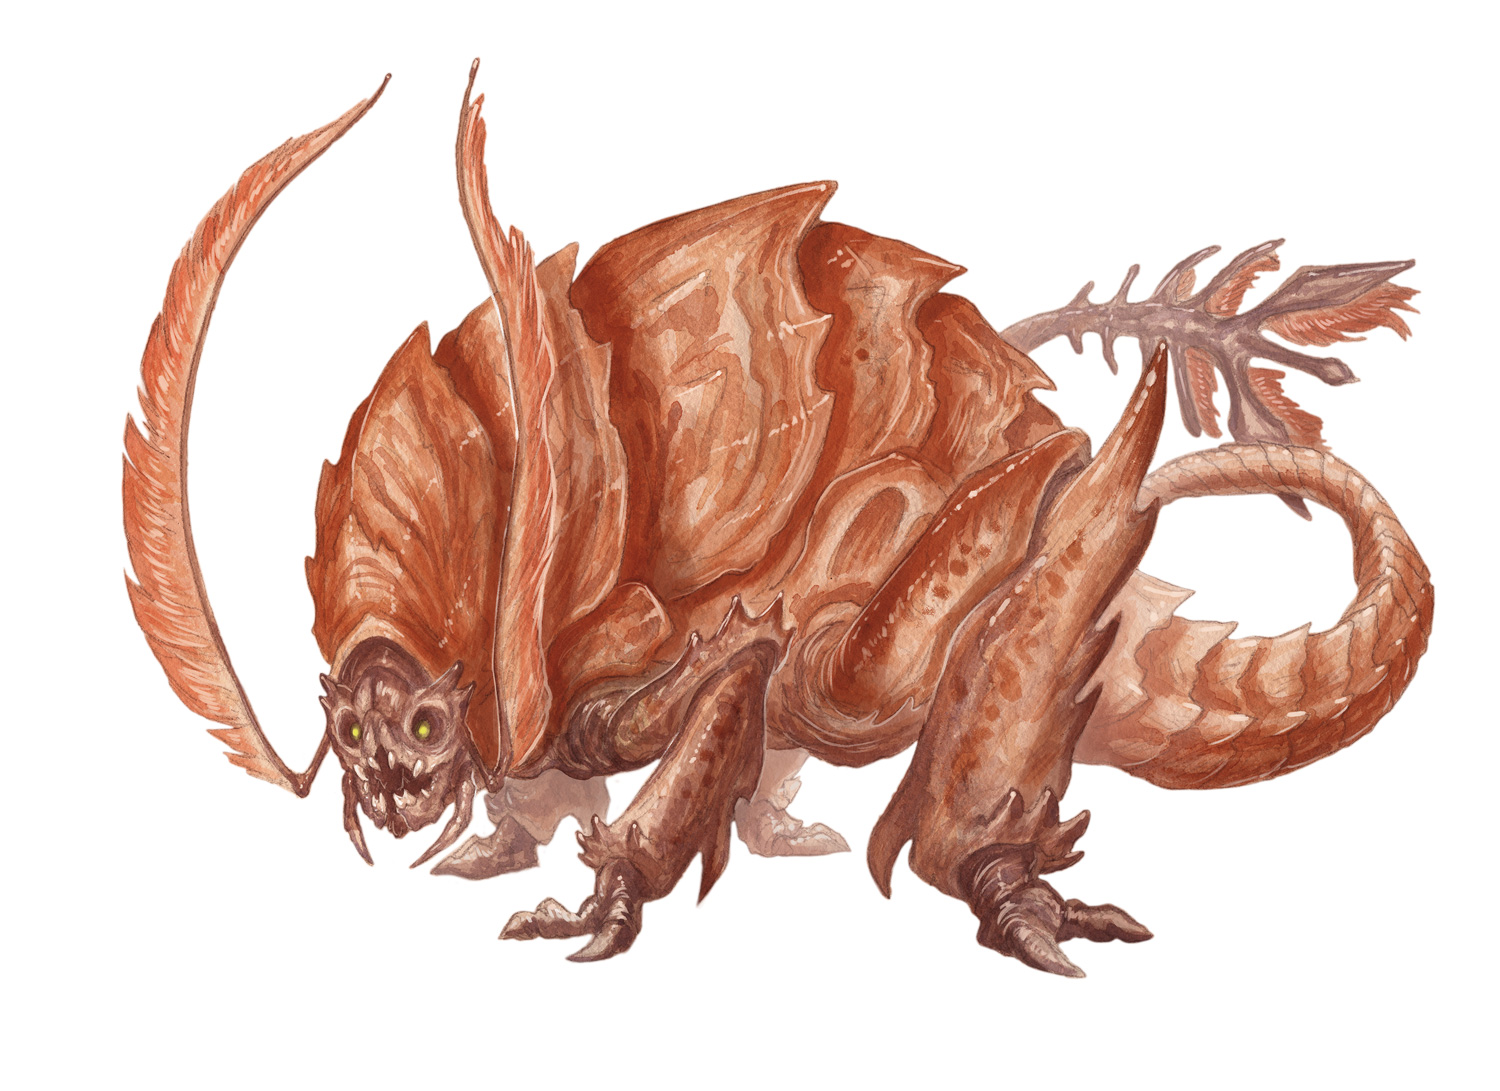 Rust monster | Forgotten Realms Wiki | FANDOM powered by Wikia